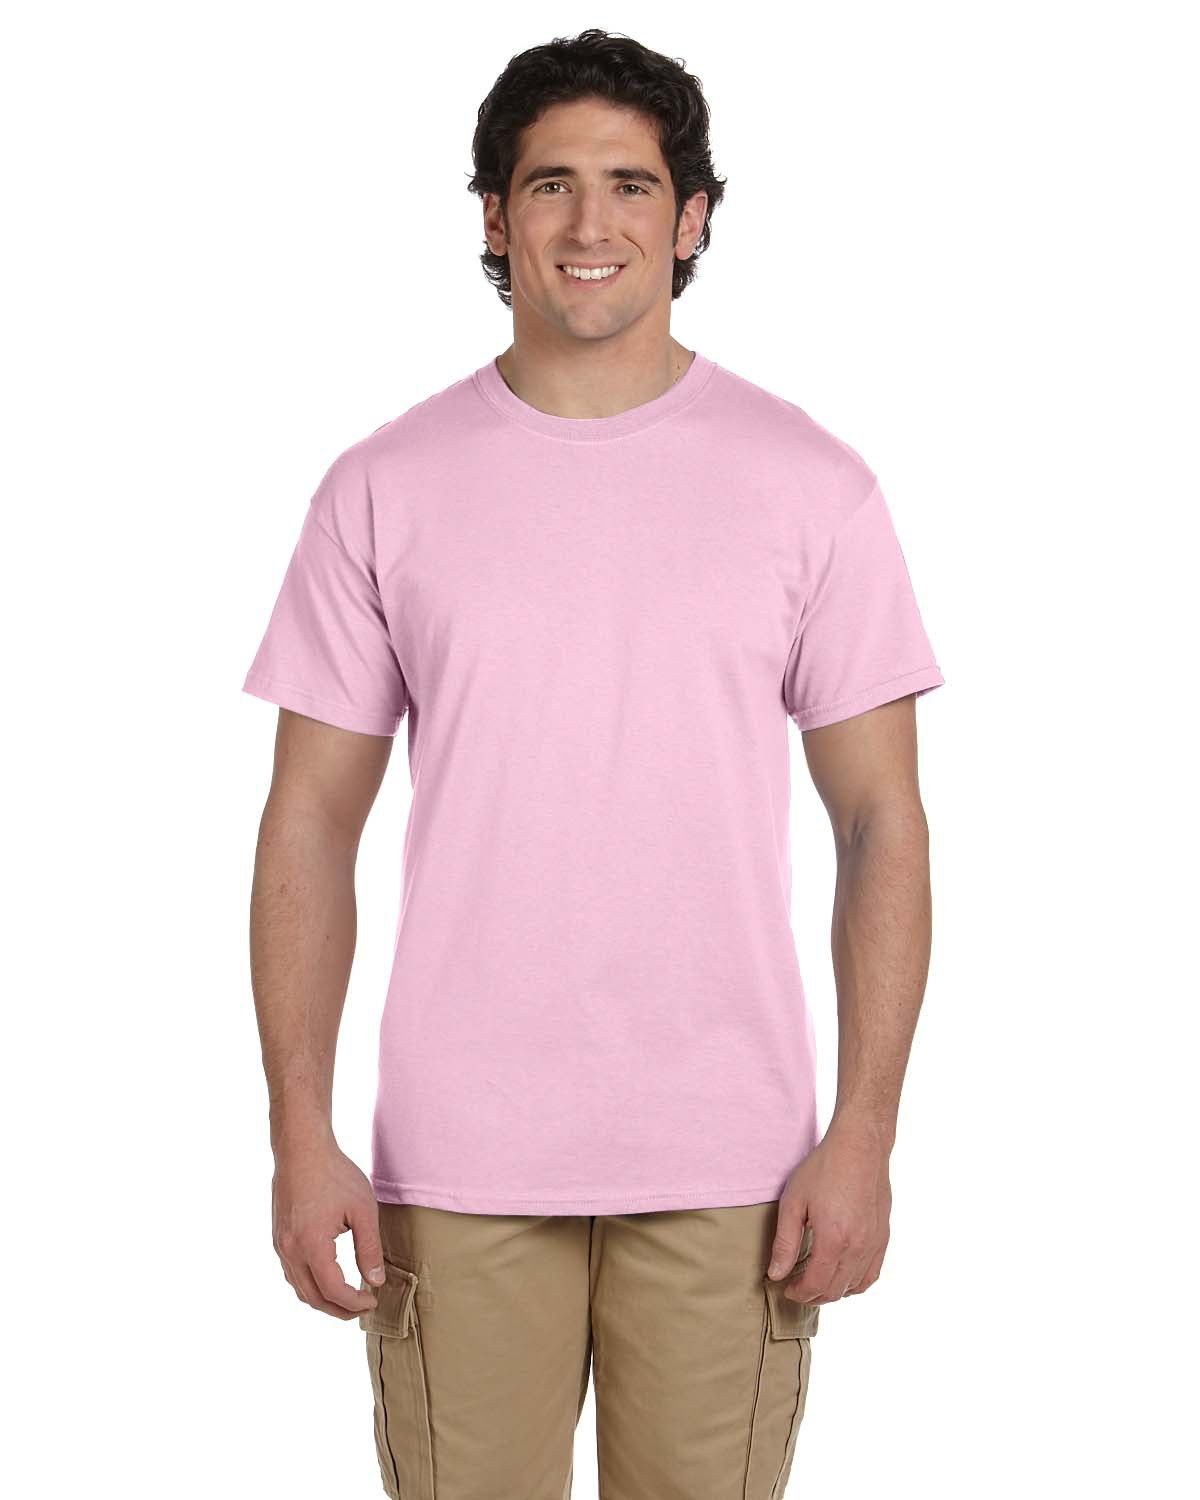 Fruit of the Loom Adult HD Cotton™ T-Shirt CLASSIC PINK